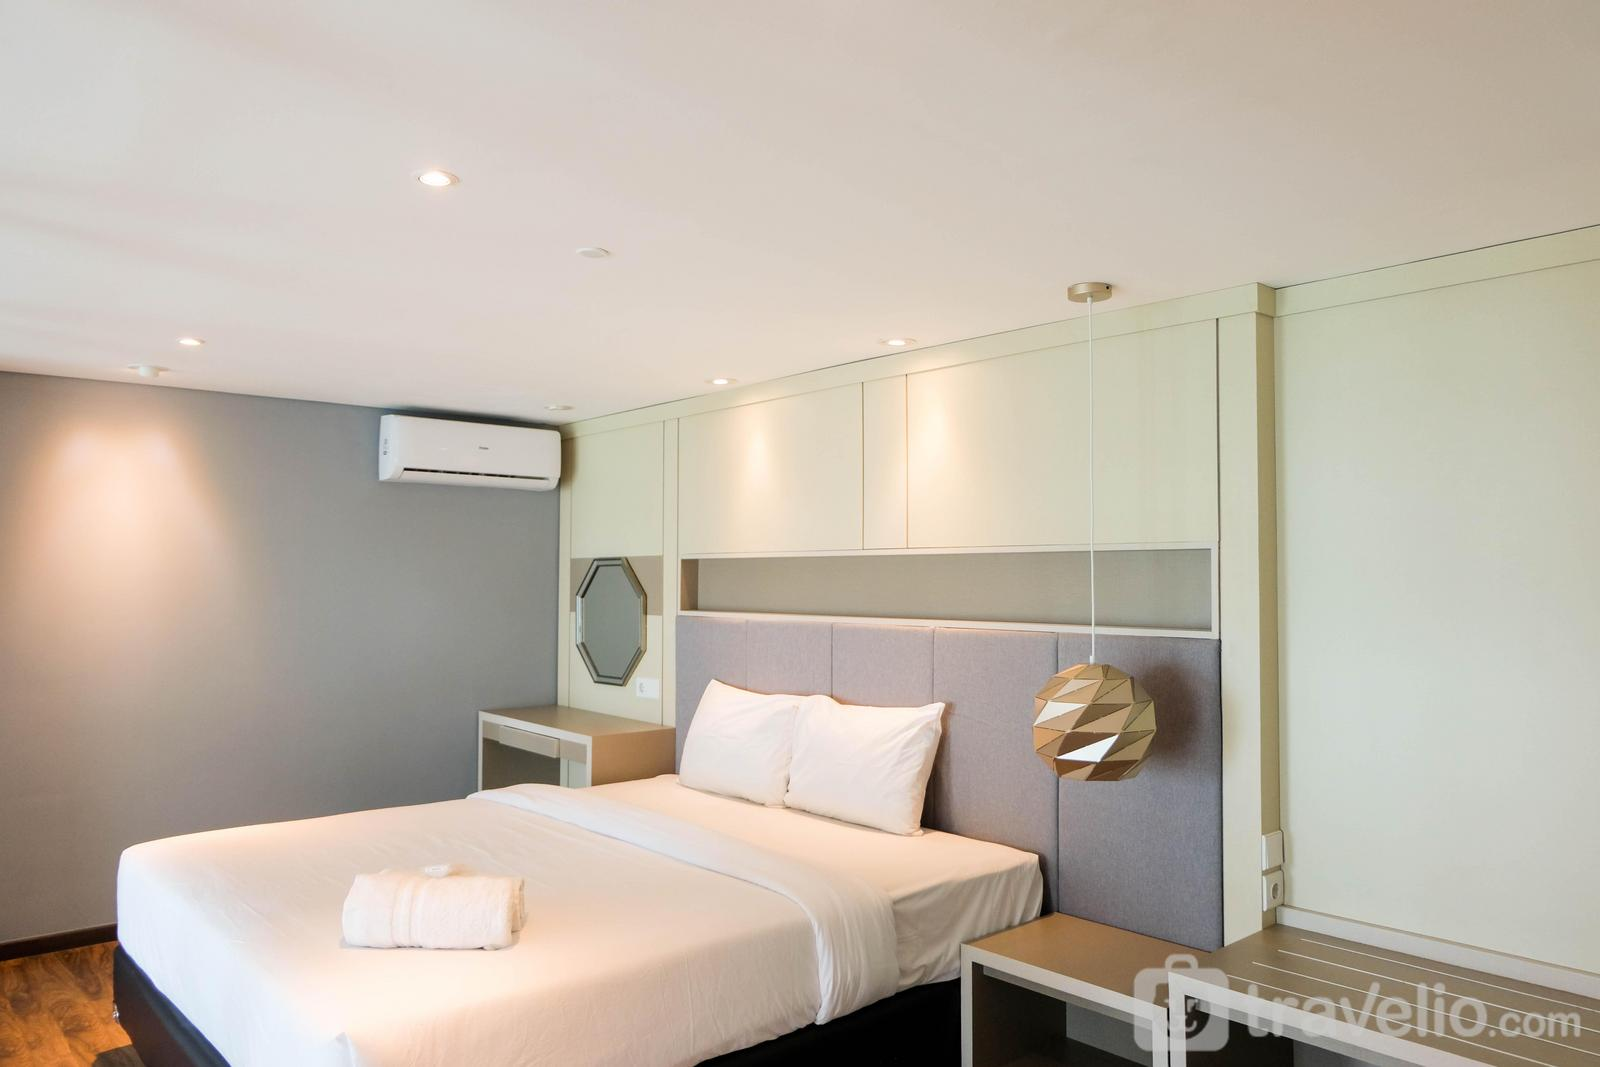 Brooklyn Apartment Alam Sutera - Exclusive and Cozy 1BR Brooklyn Apartment By Travelio